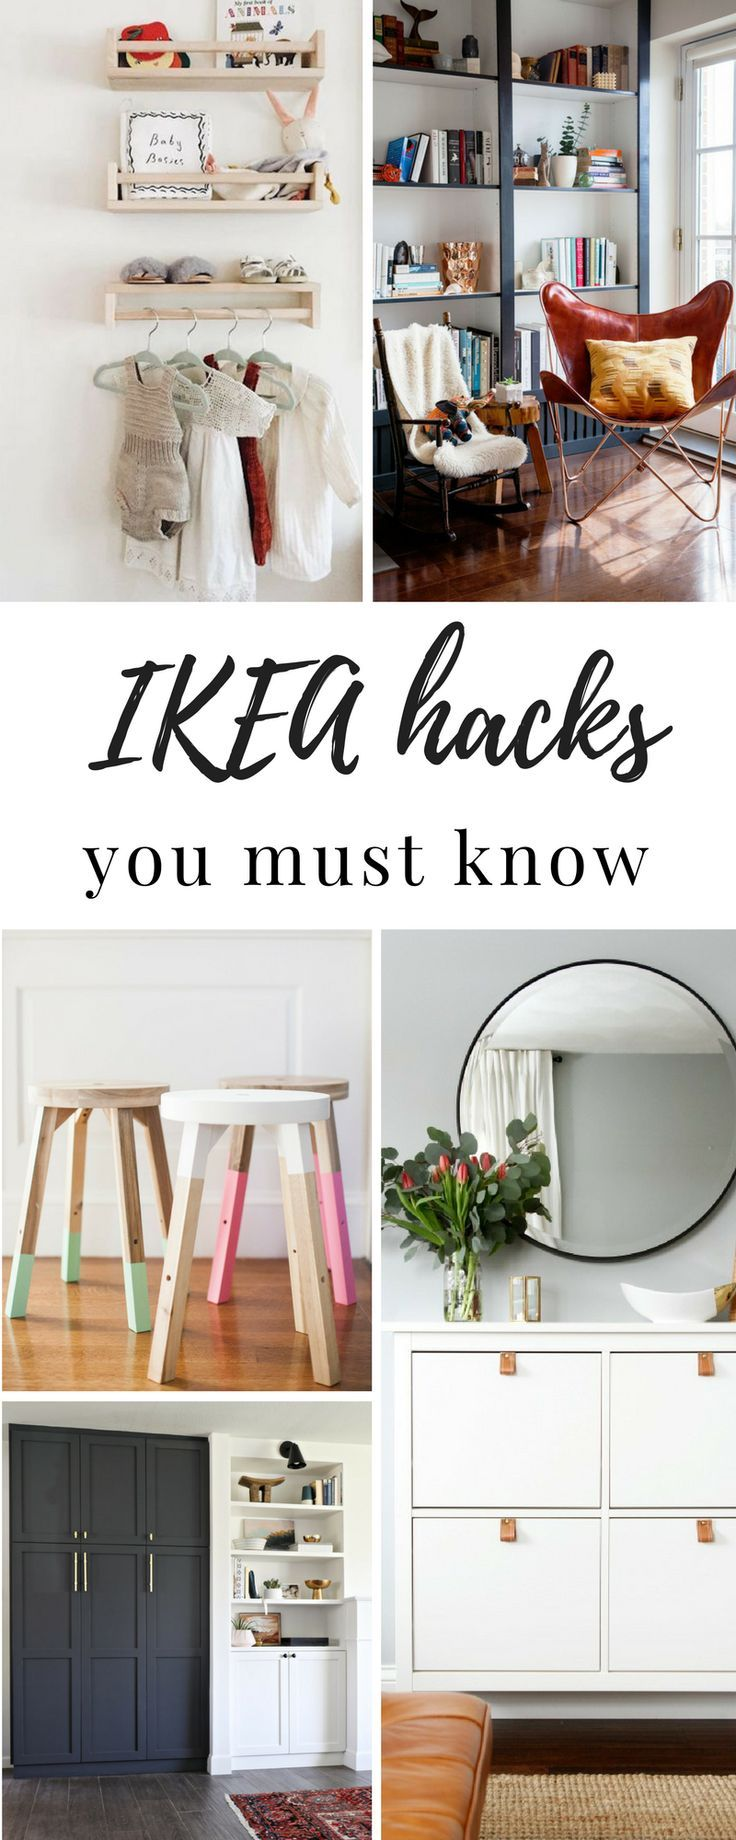 7 Amazing IKEA hacks you need to know #diyideas #imaginative #hack ...